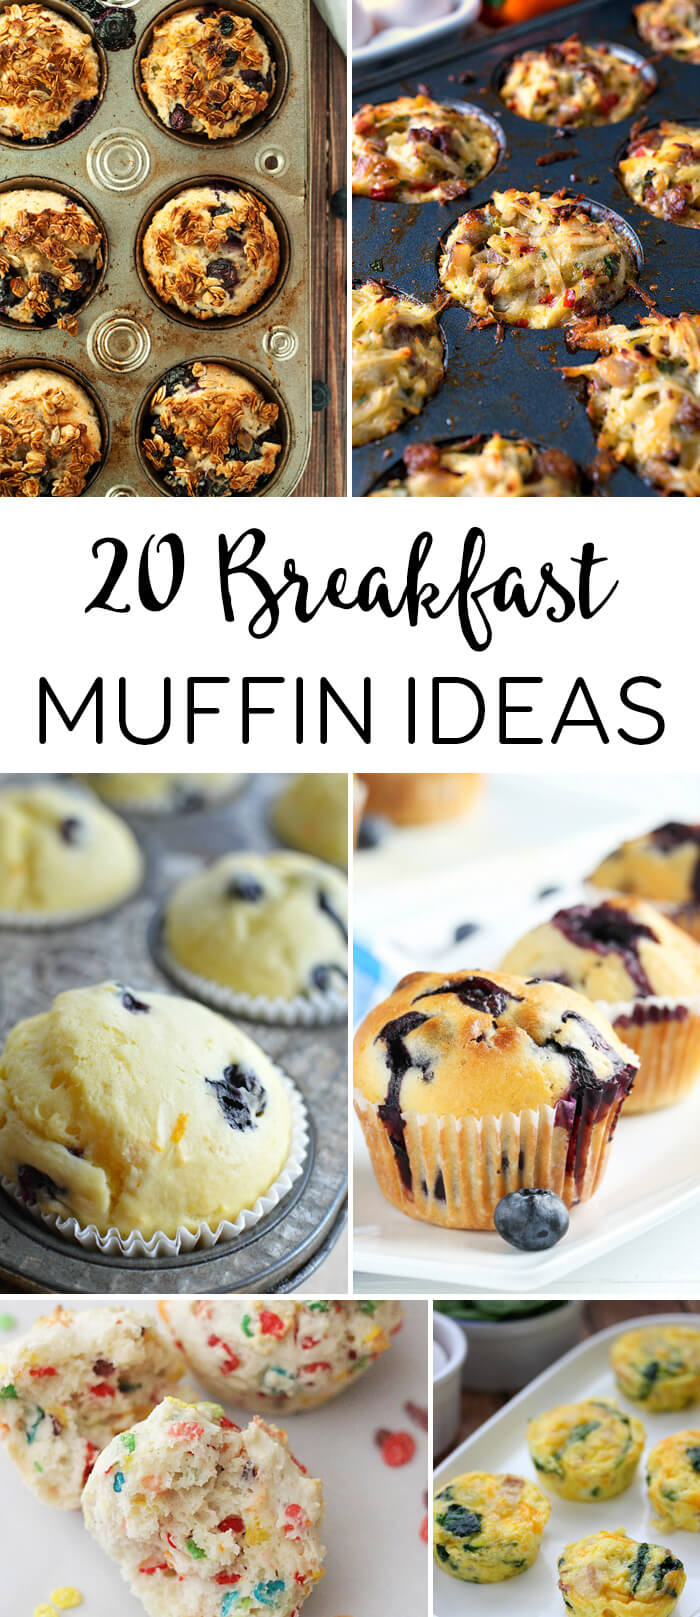 20 Breakfast Muffin Recipes to help you start your week!